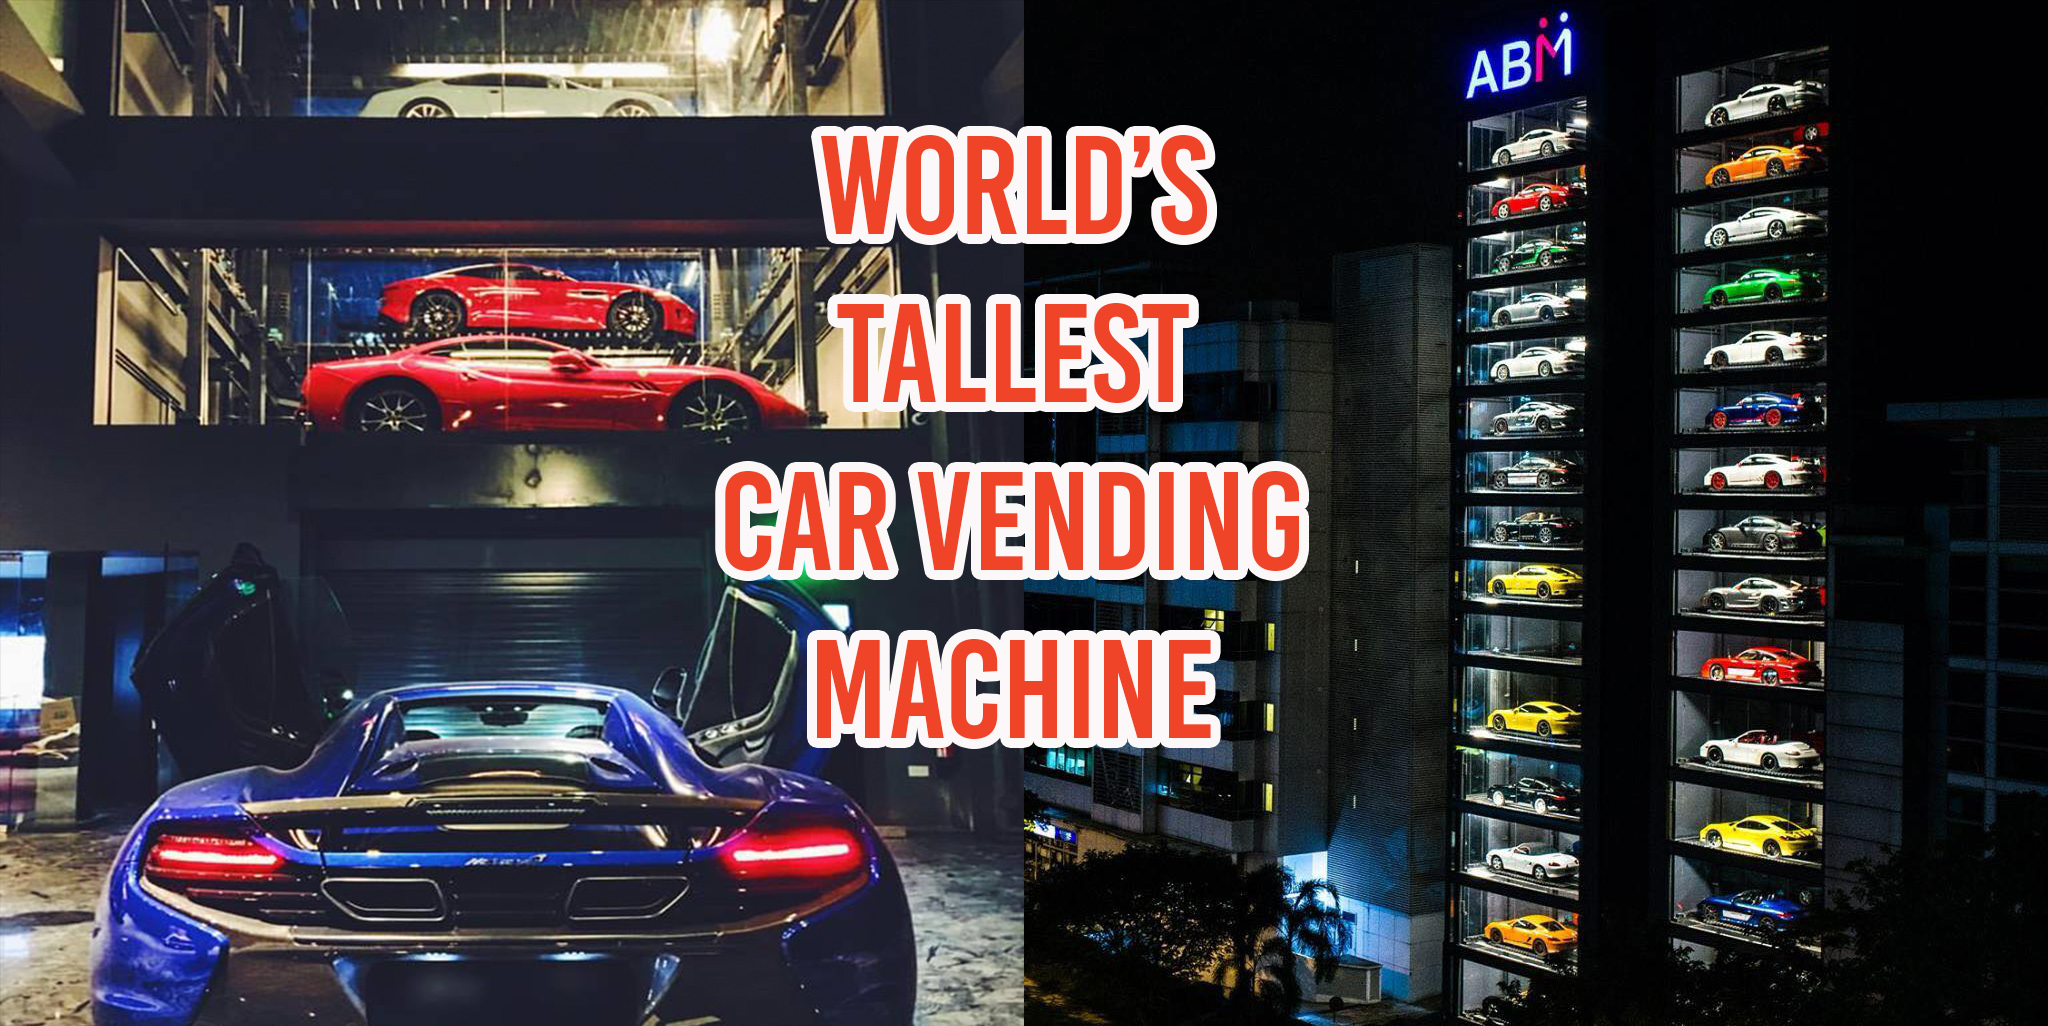 Car Vending Machine In Singapore Sells Lambos Ferraris And Bentleys